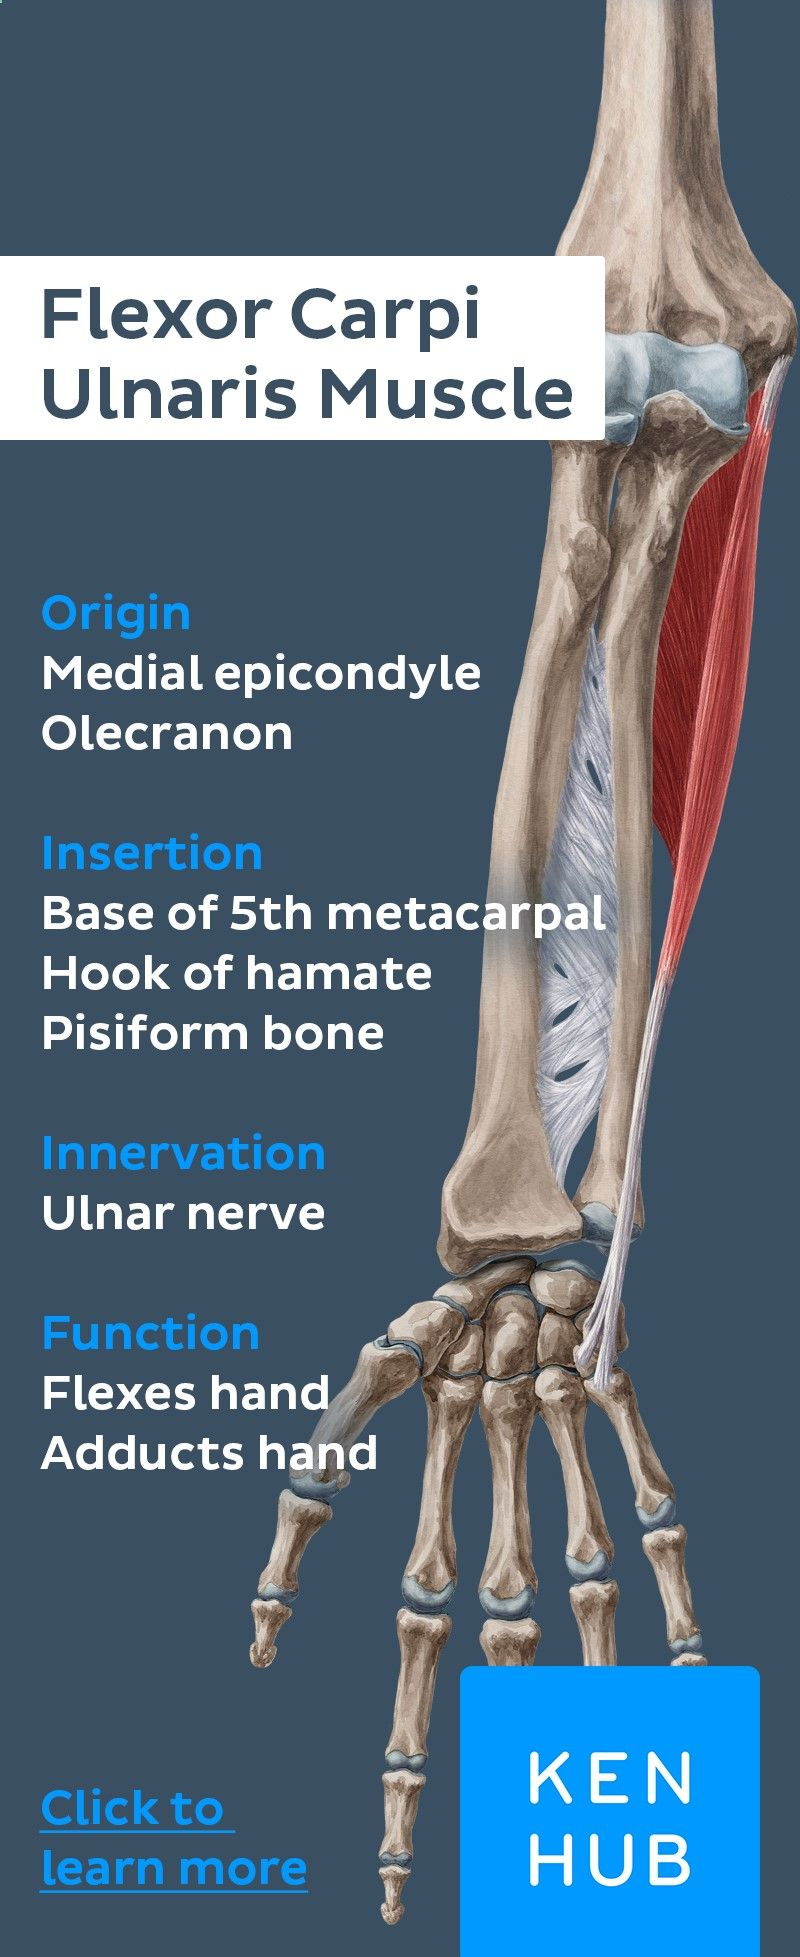 The flexor carpi ulnaris #muscle arises from the medial epicondyle ...